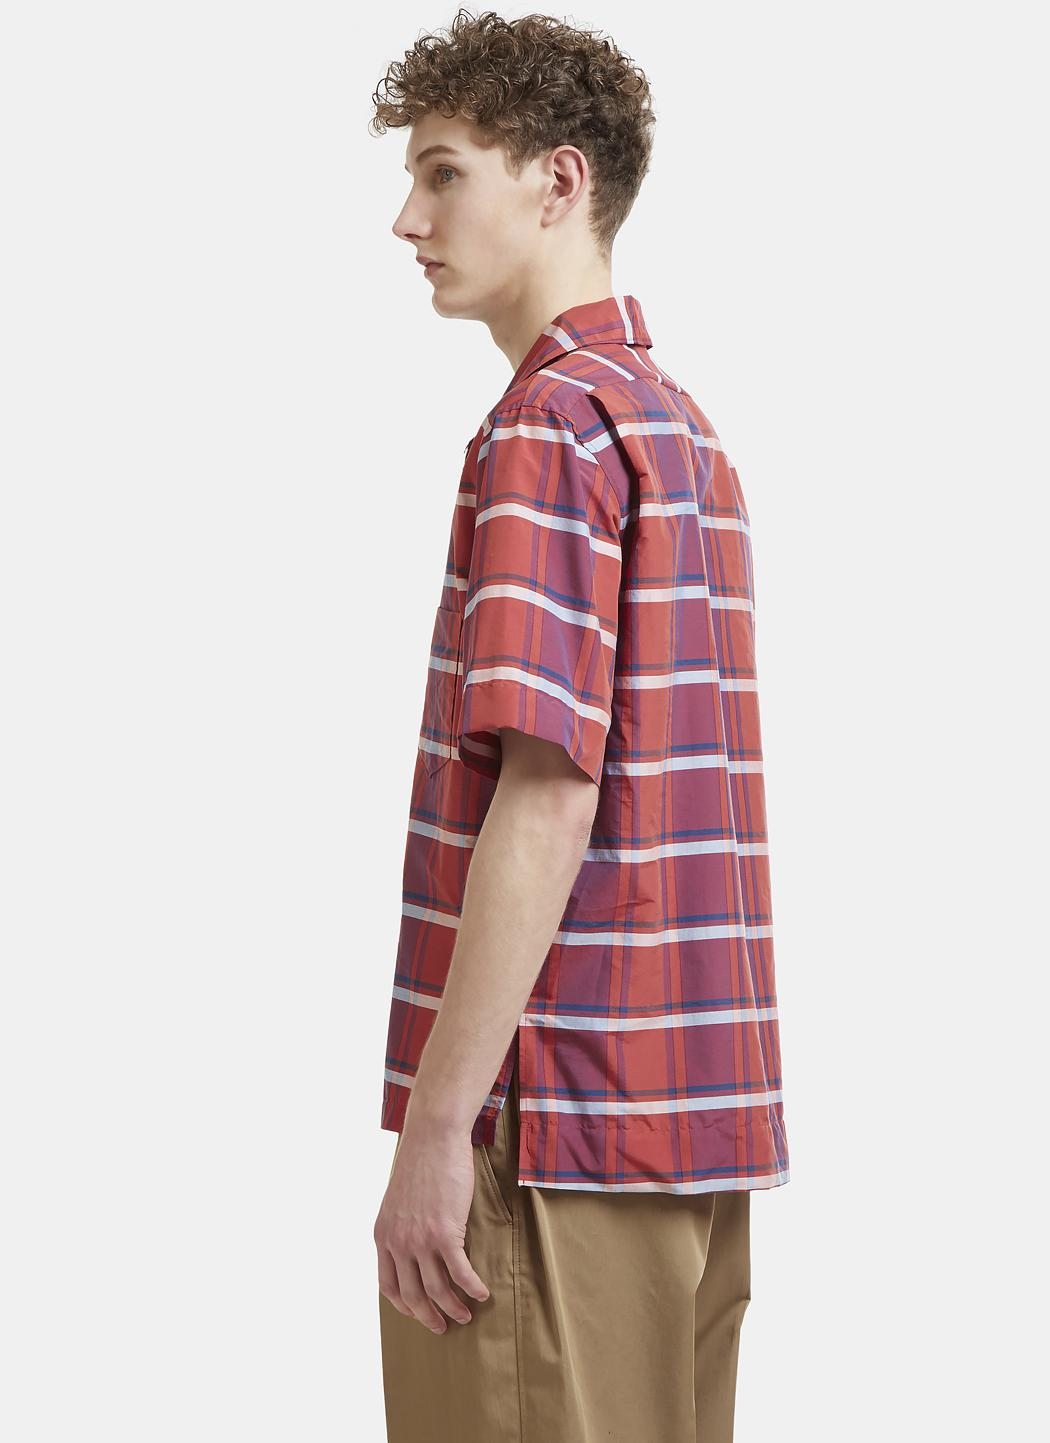 Acne Studios Cotton Shirt in Brick Red (Red) for Men